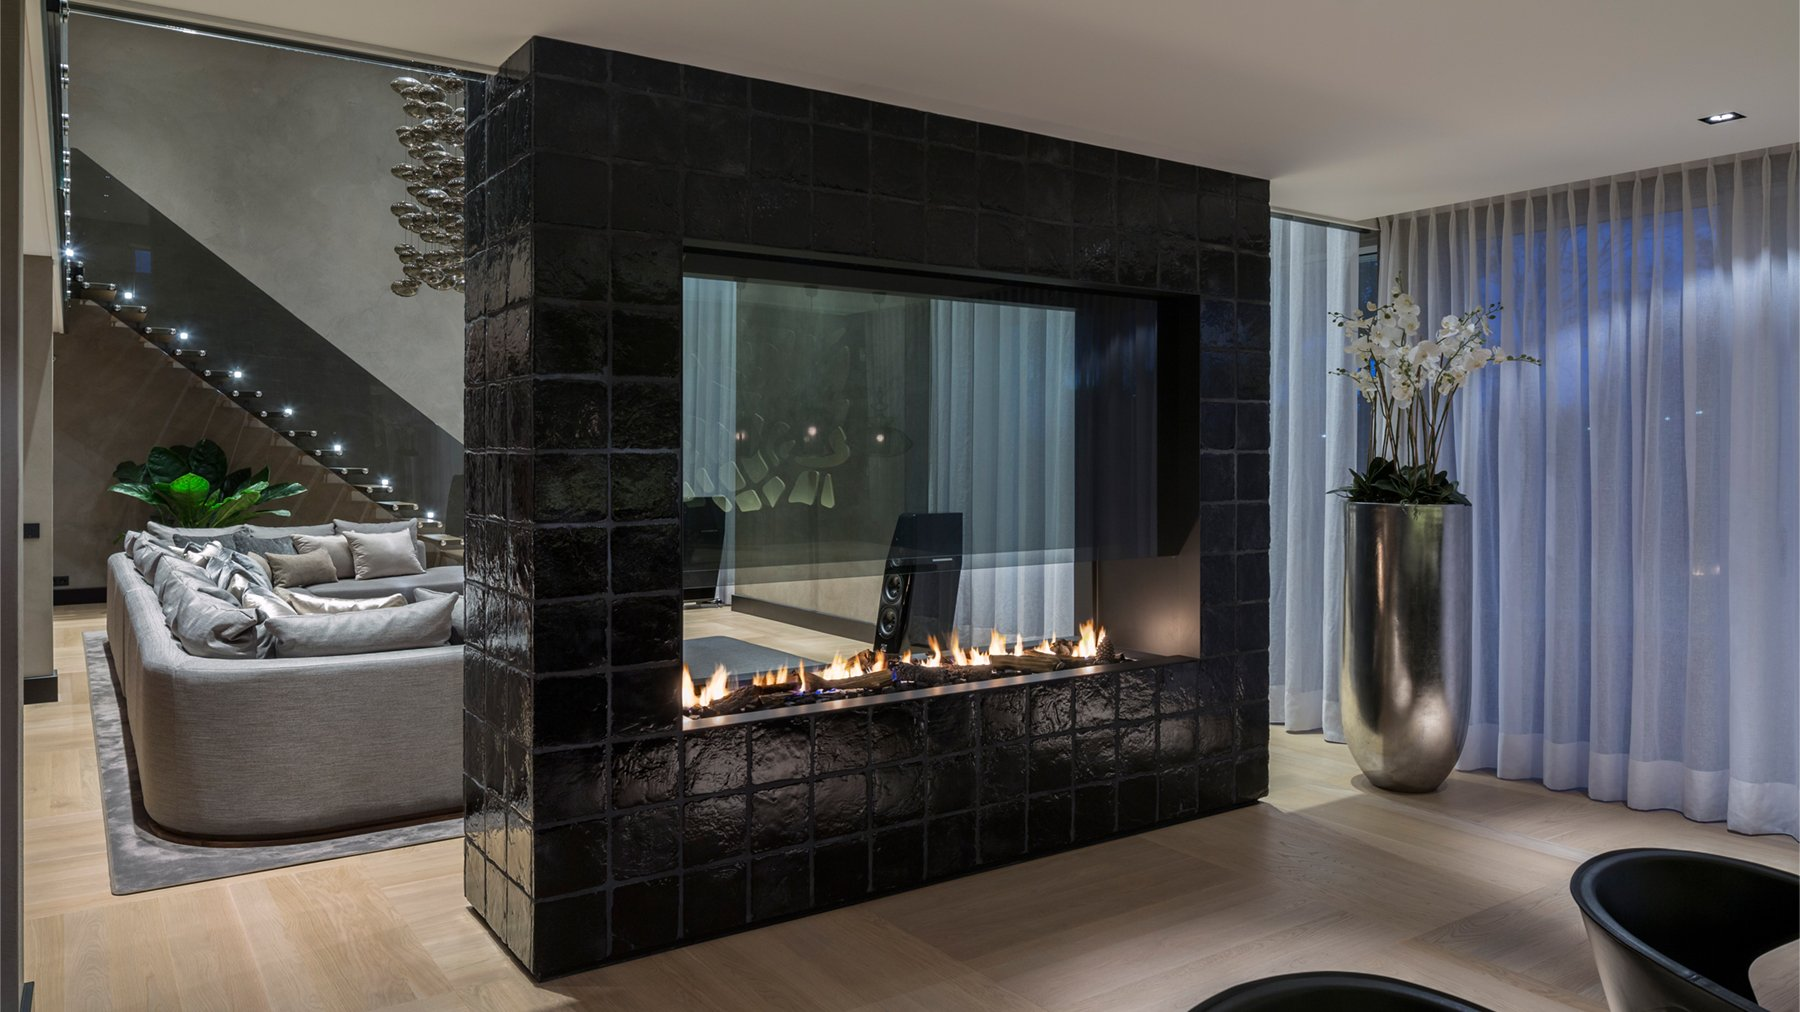 contemporary fireplaces i designer fireplaces i luxury. Black Bedroom Furniture Sets. Home Design Ideas